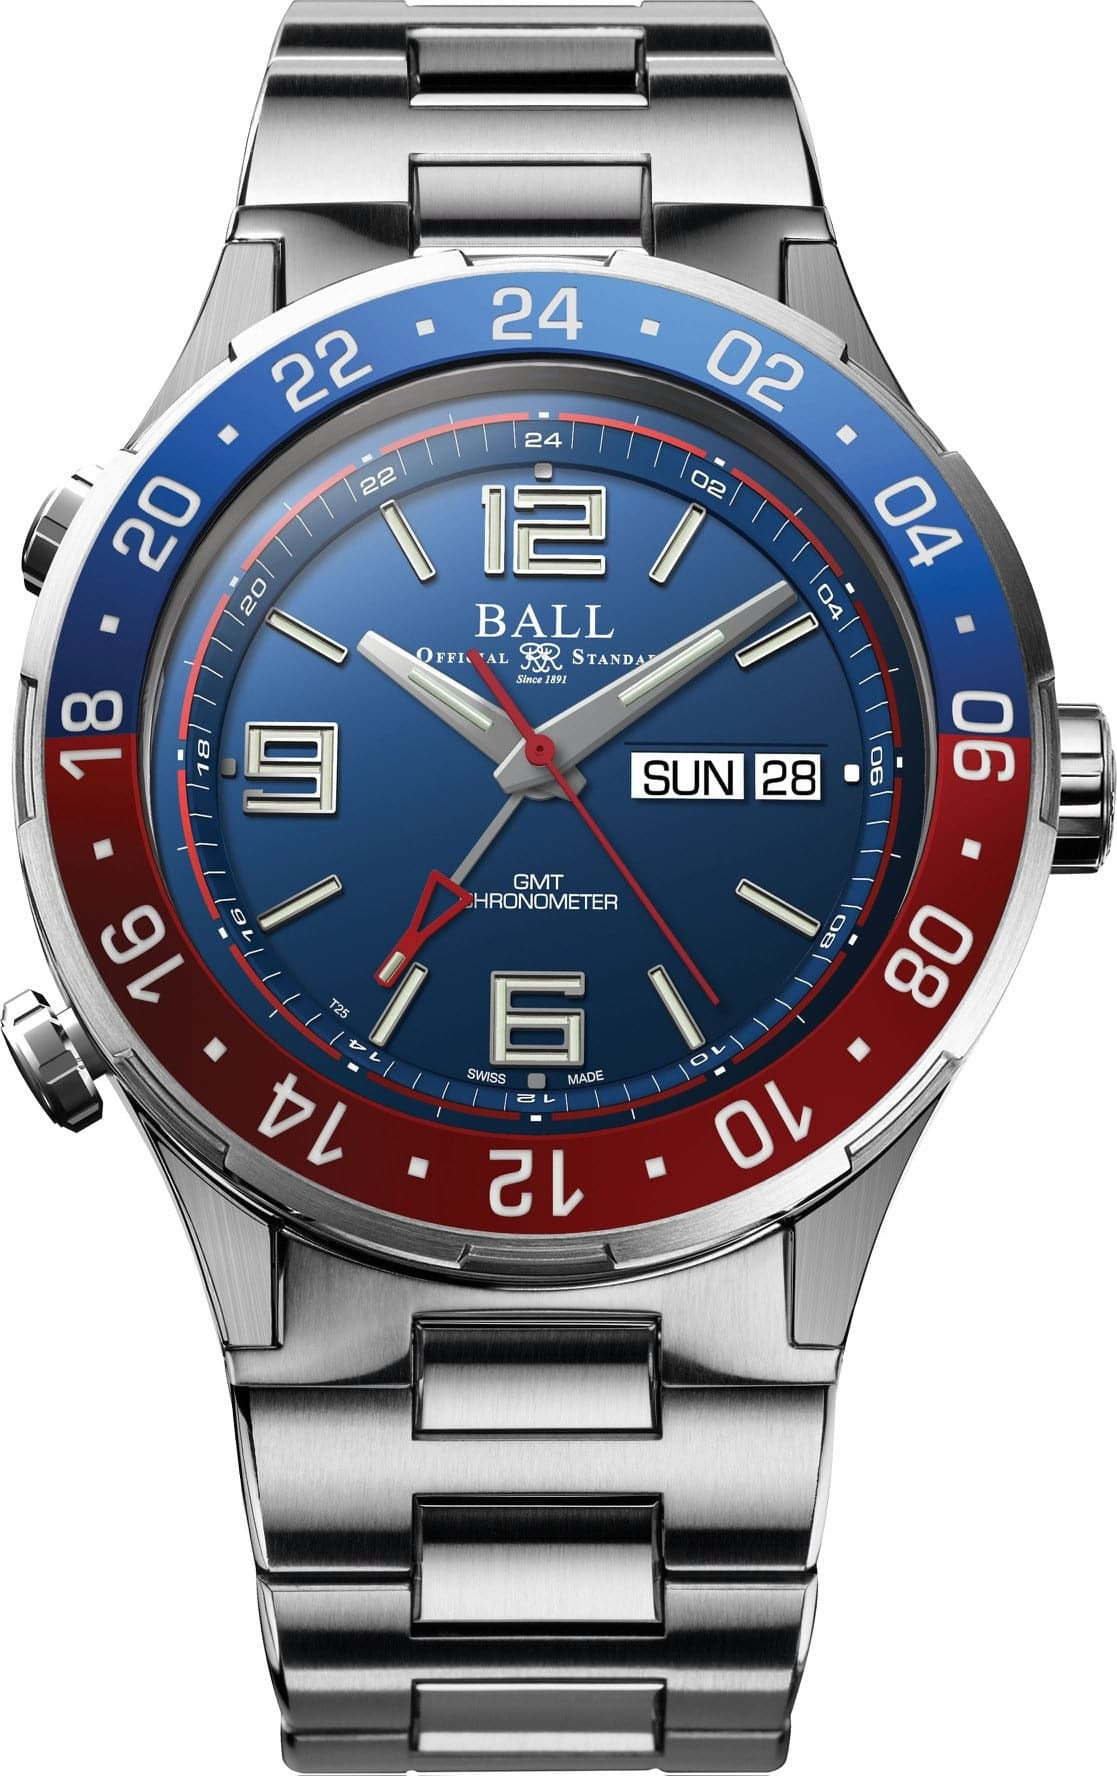 BALL DG3030B-SCJ-BE Roadmaster Marine GMT LIMITED EDITION 40mm Watch